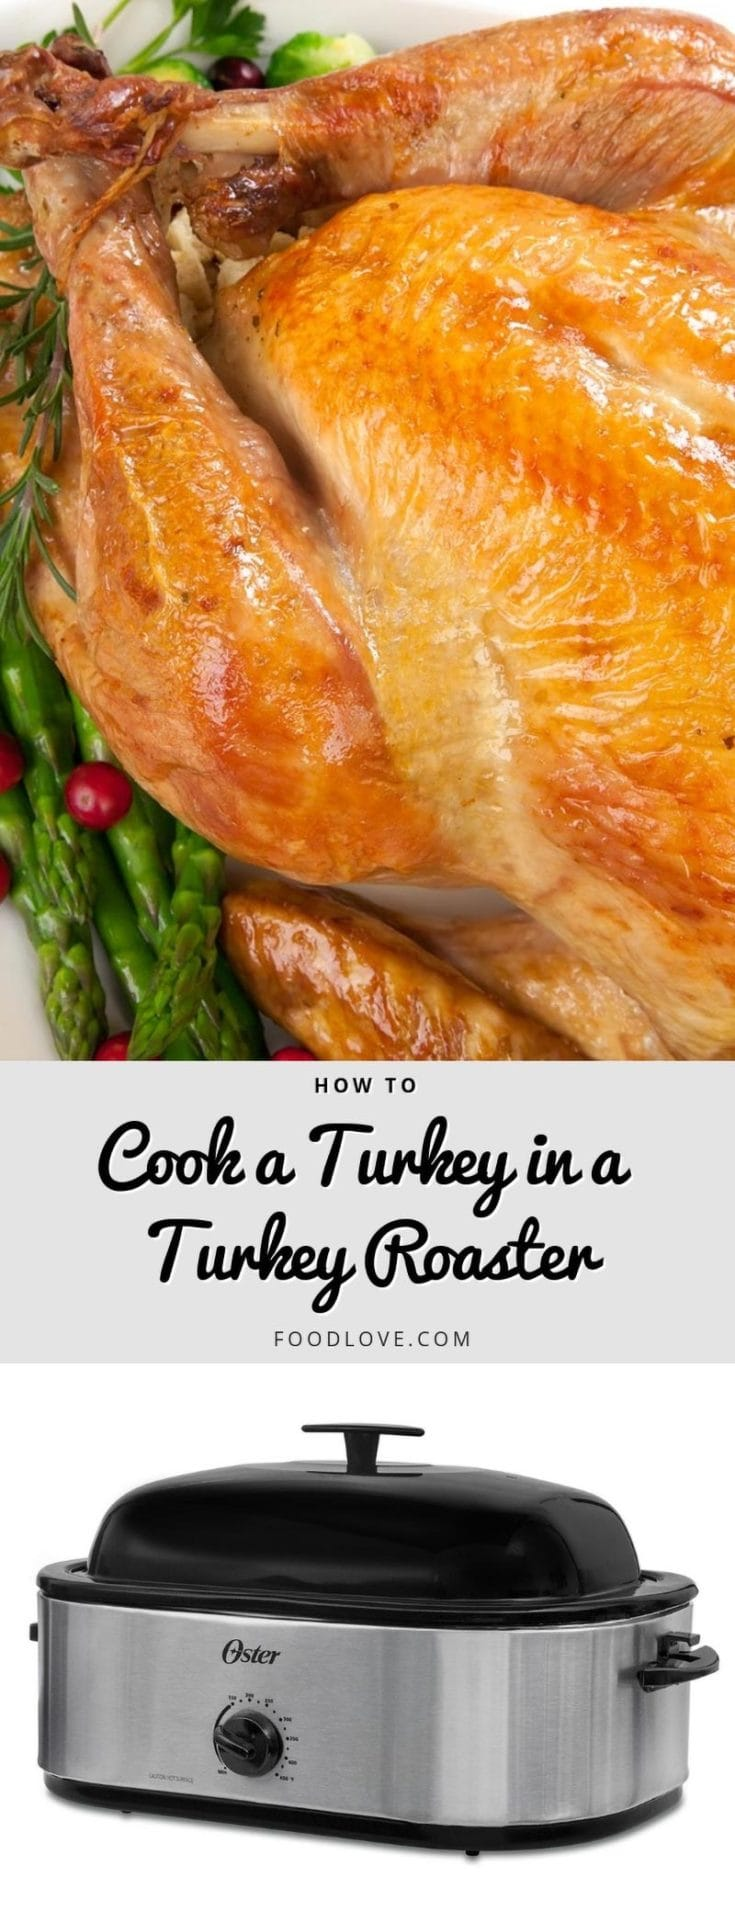 How to cook a turkey in an electric turkey roaster, with step-by-step instructions for a beautiful, juicy roast turkey every time. #thanksgiving #thanksgivingrecipes #turkey #howtoroastaturkey #turkeyhowto #electricroaster #roasteroven #foodlove